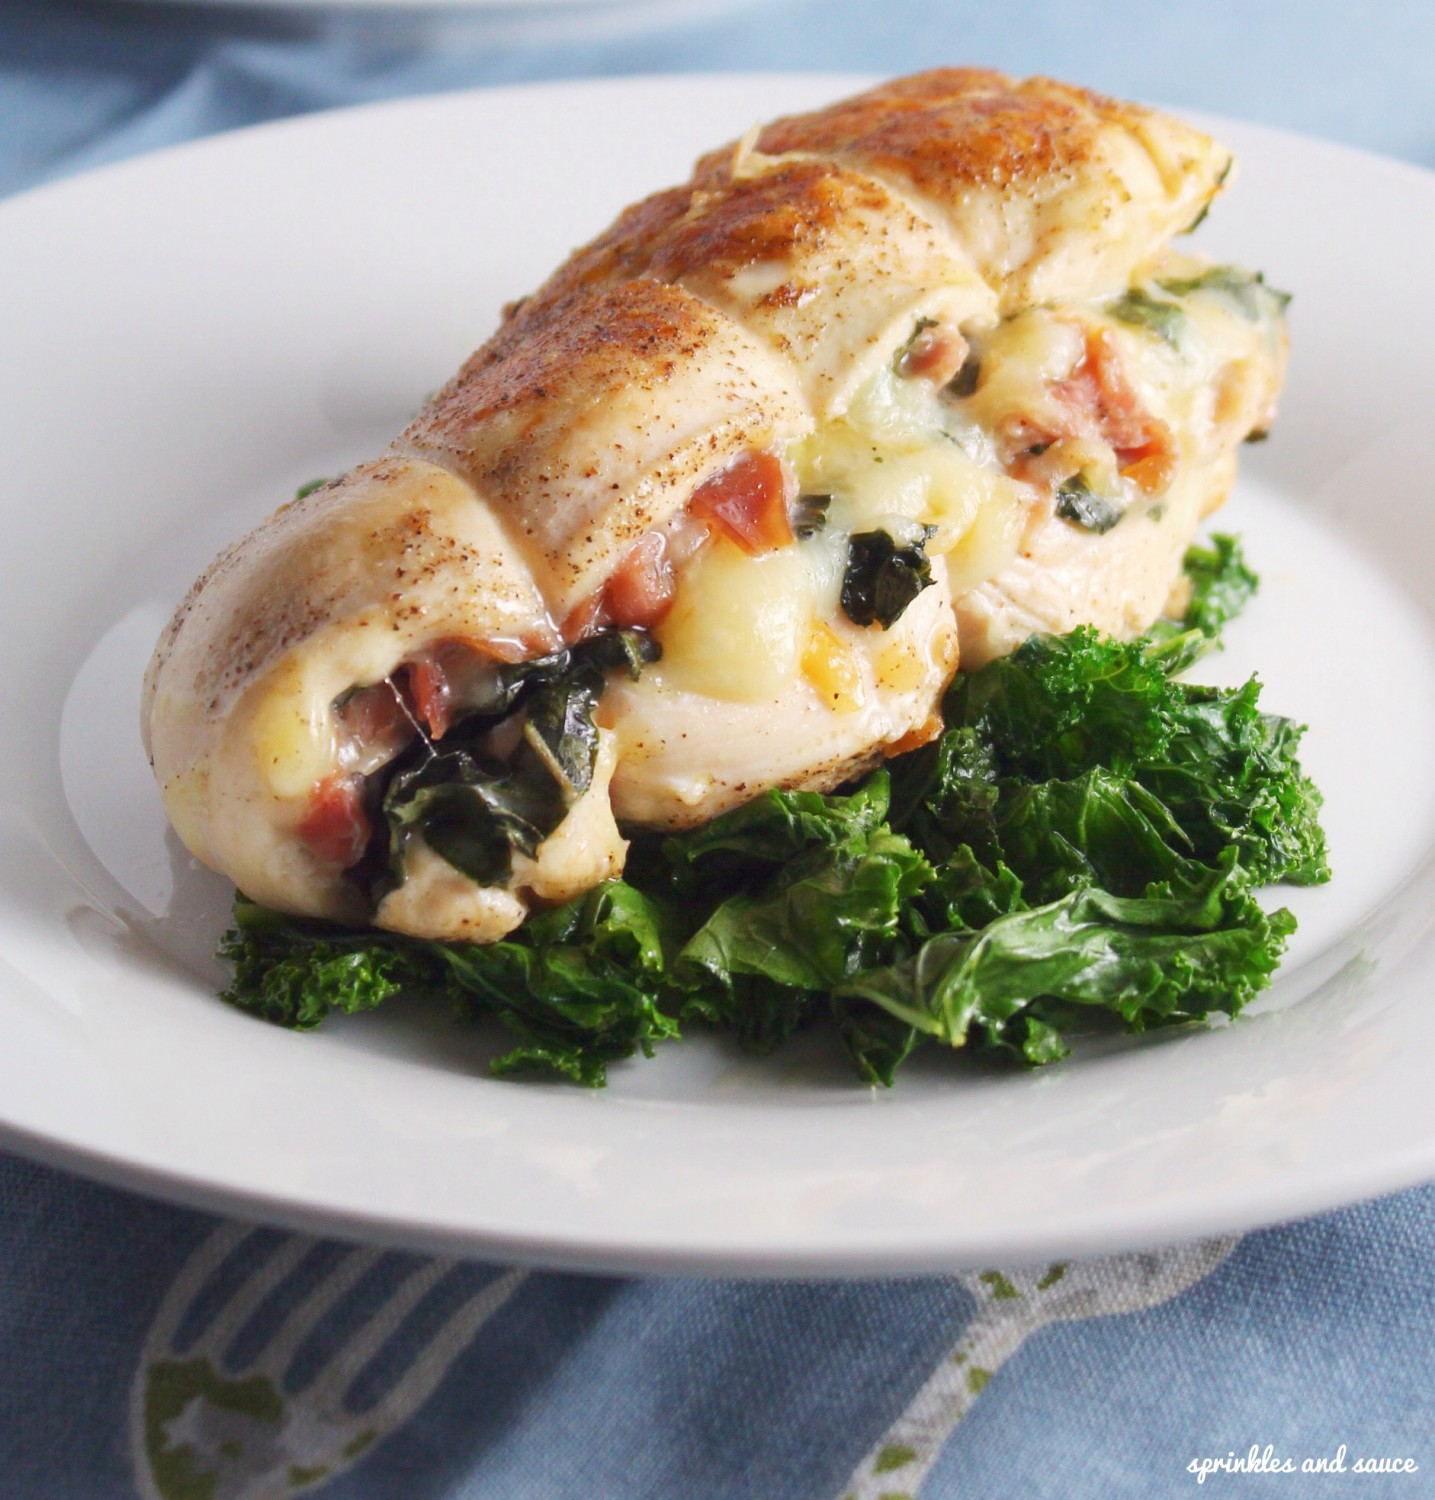 Stuffed Chicken with Proscuitto, Mozzarela and Basil1